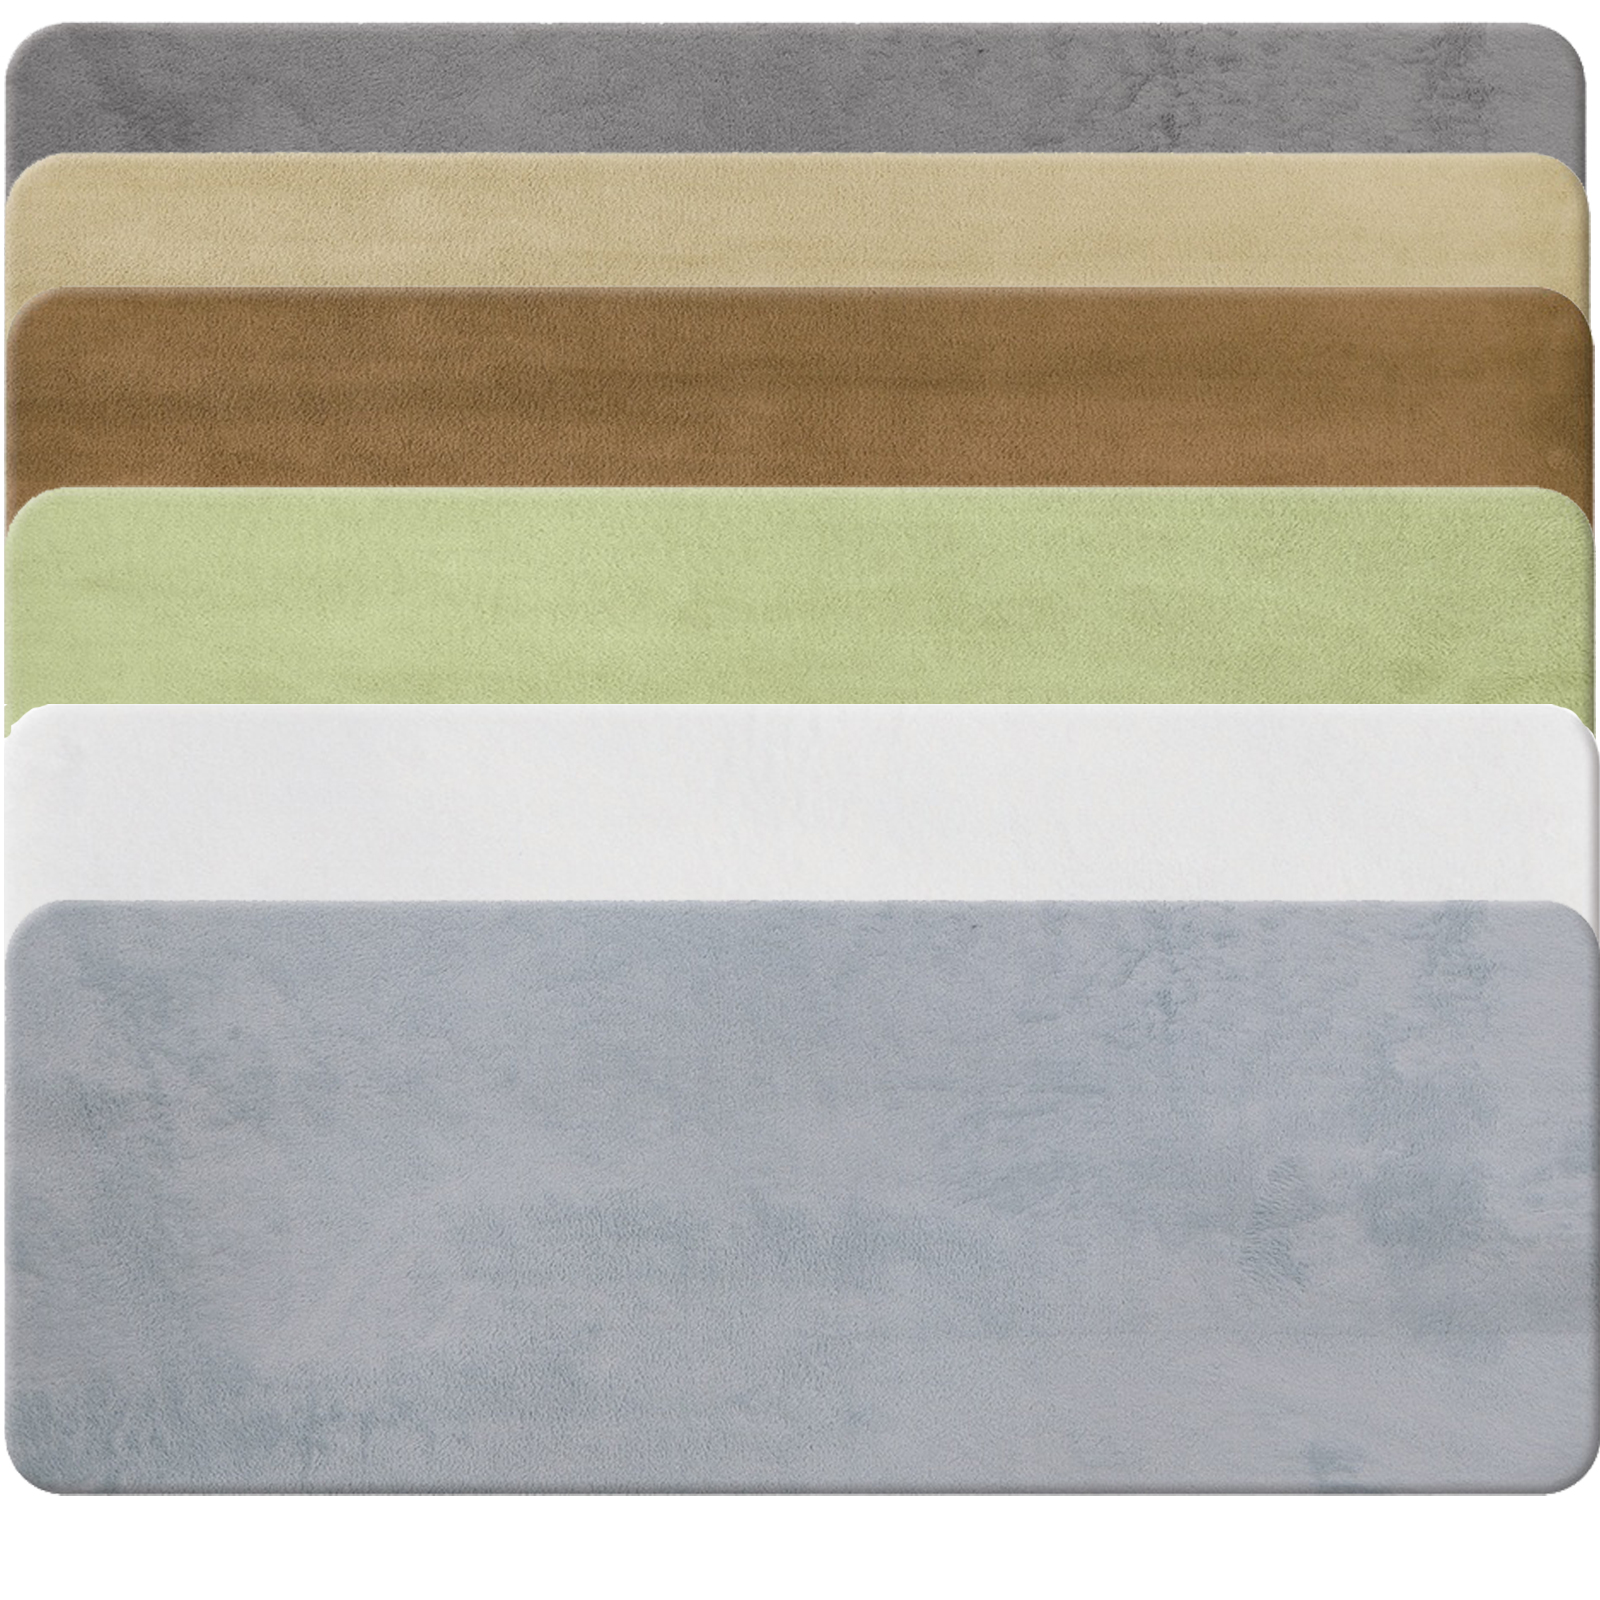 Sears bathroom rugs - Bath Rugs Amp Mats Bath Mat Sears